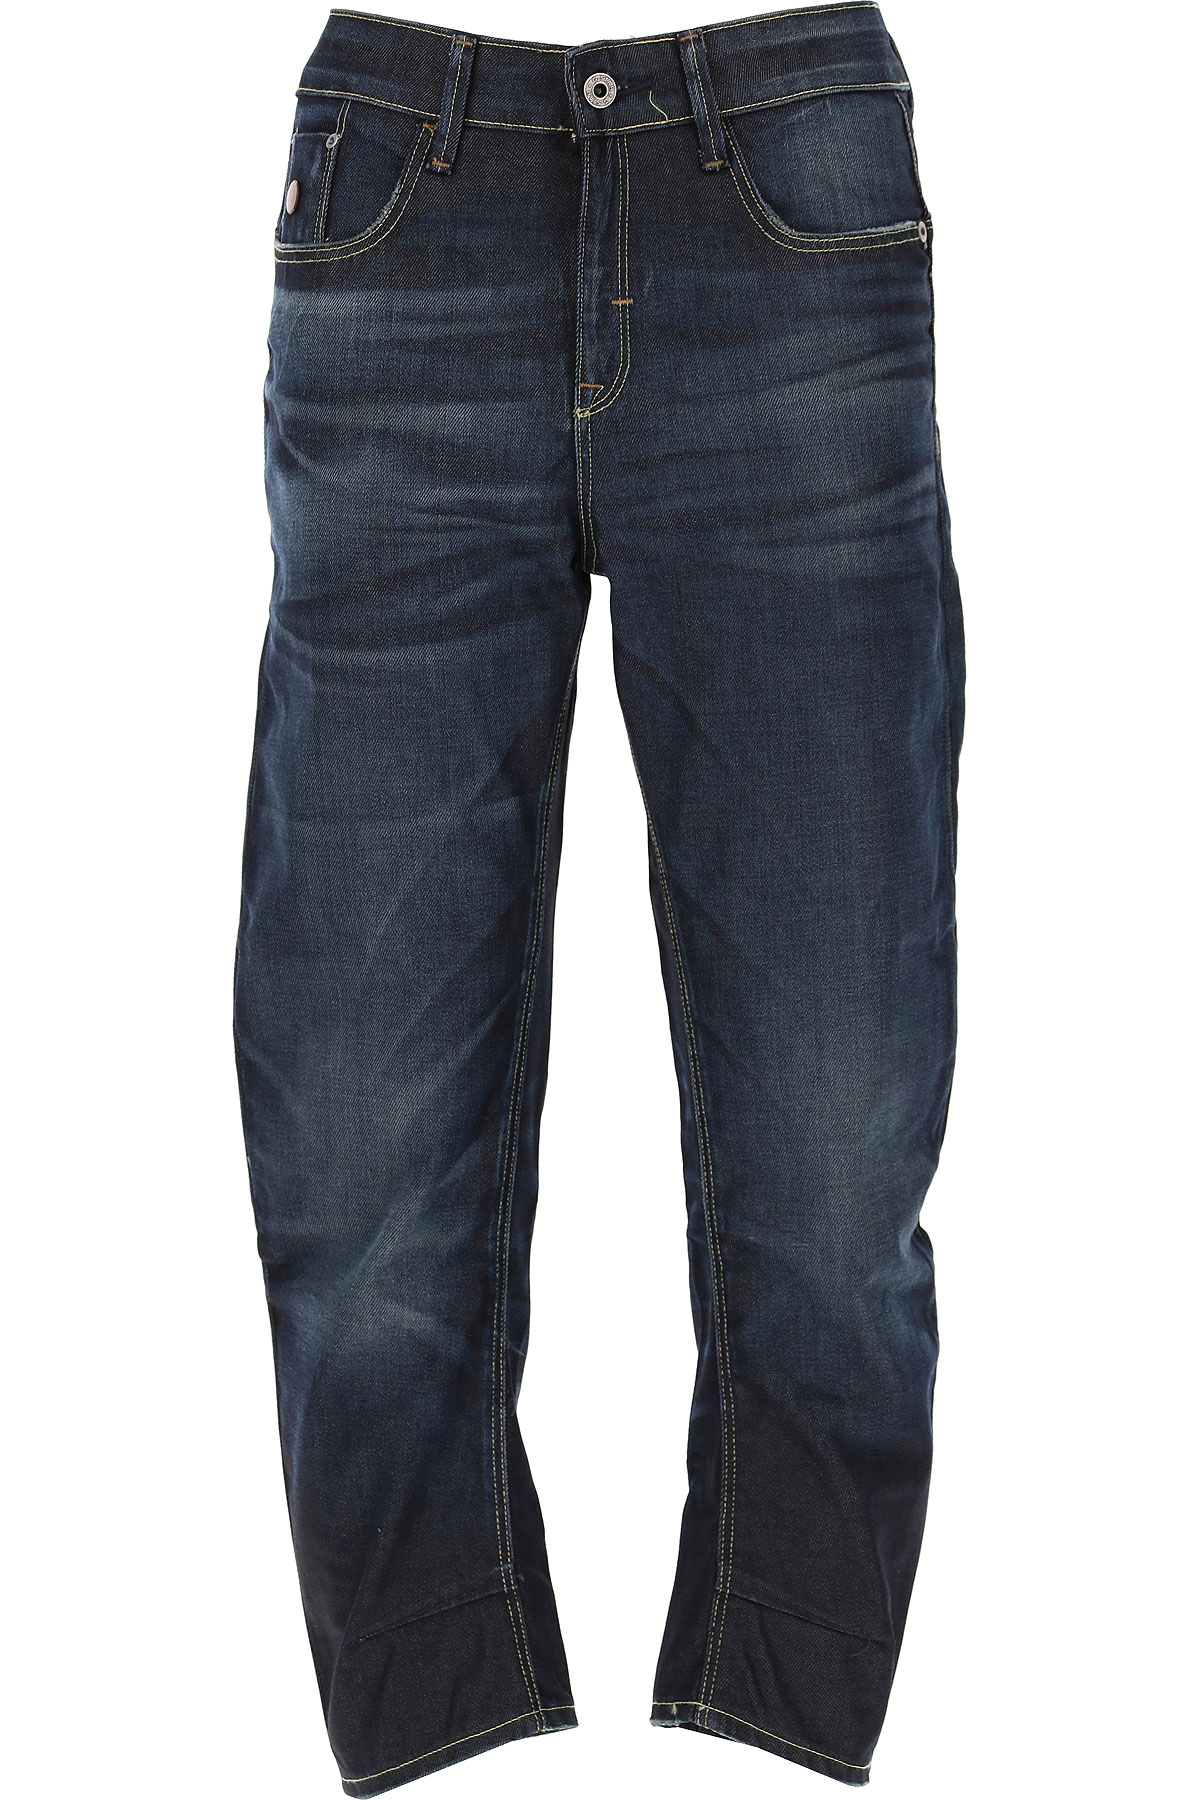 G-Star Jeans On Sale in Outlet, Dark Blue Denim, Cotton, 2019, 27 29